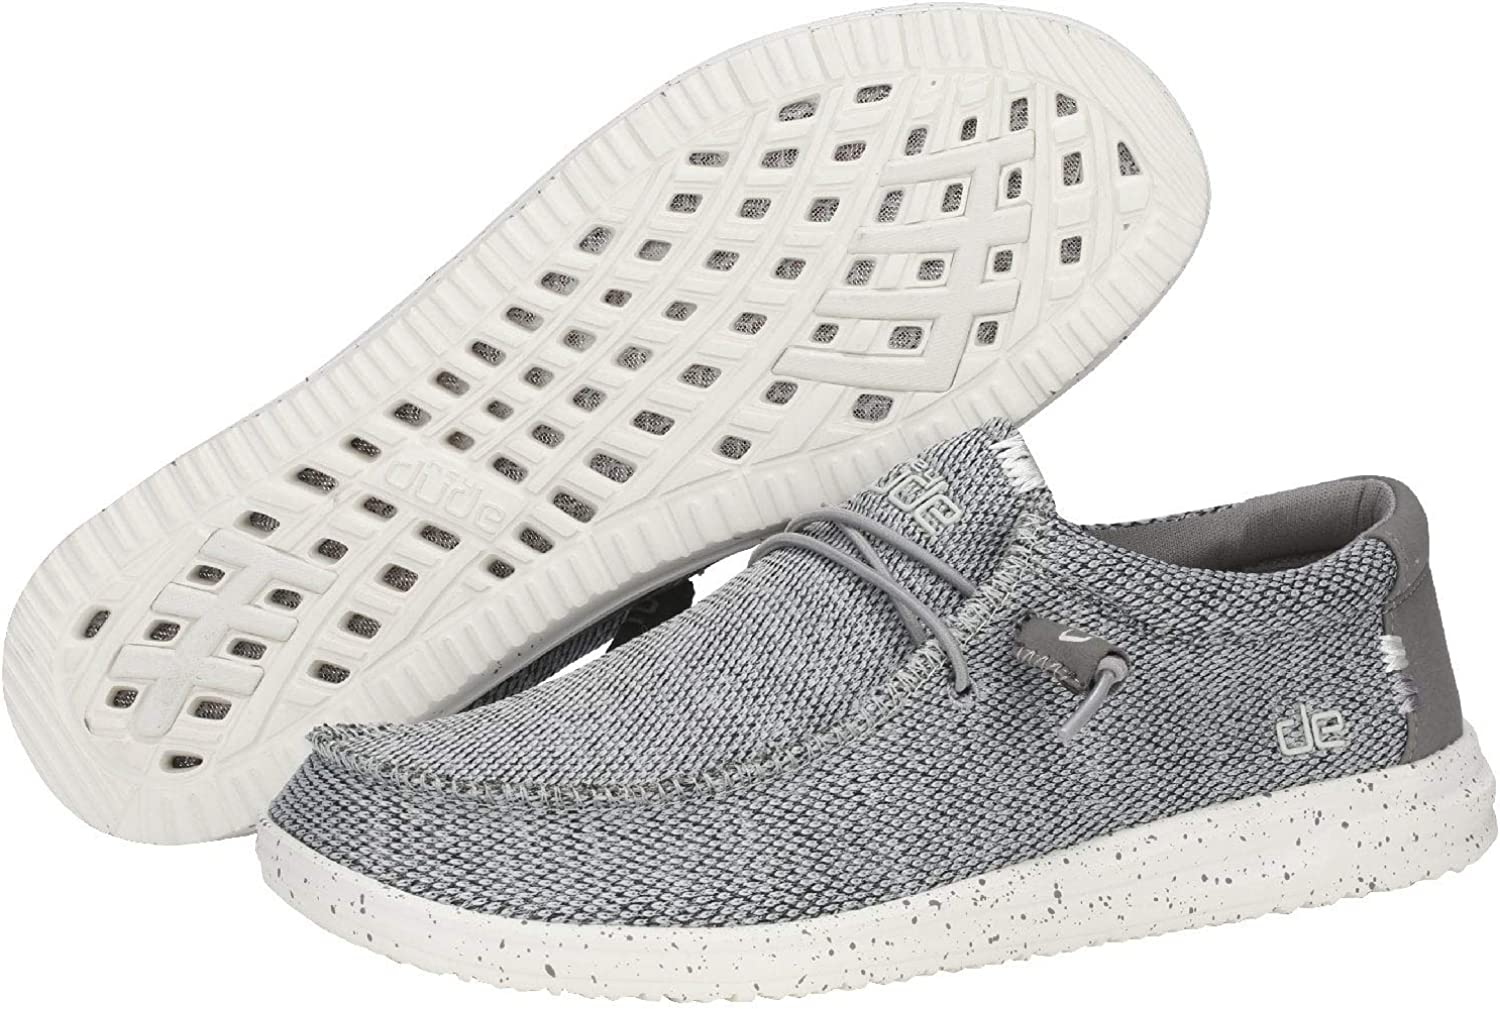 Loafers & Slip Ons Clothing, Shoes & Jewelry Hey Dude Mens